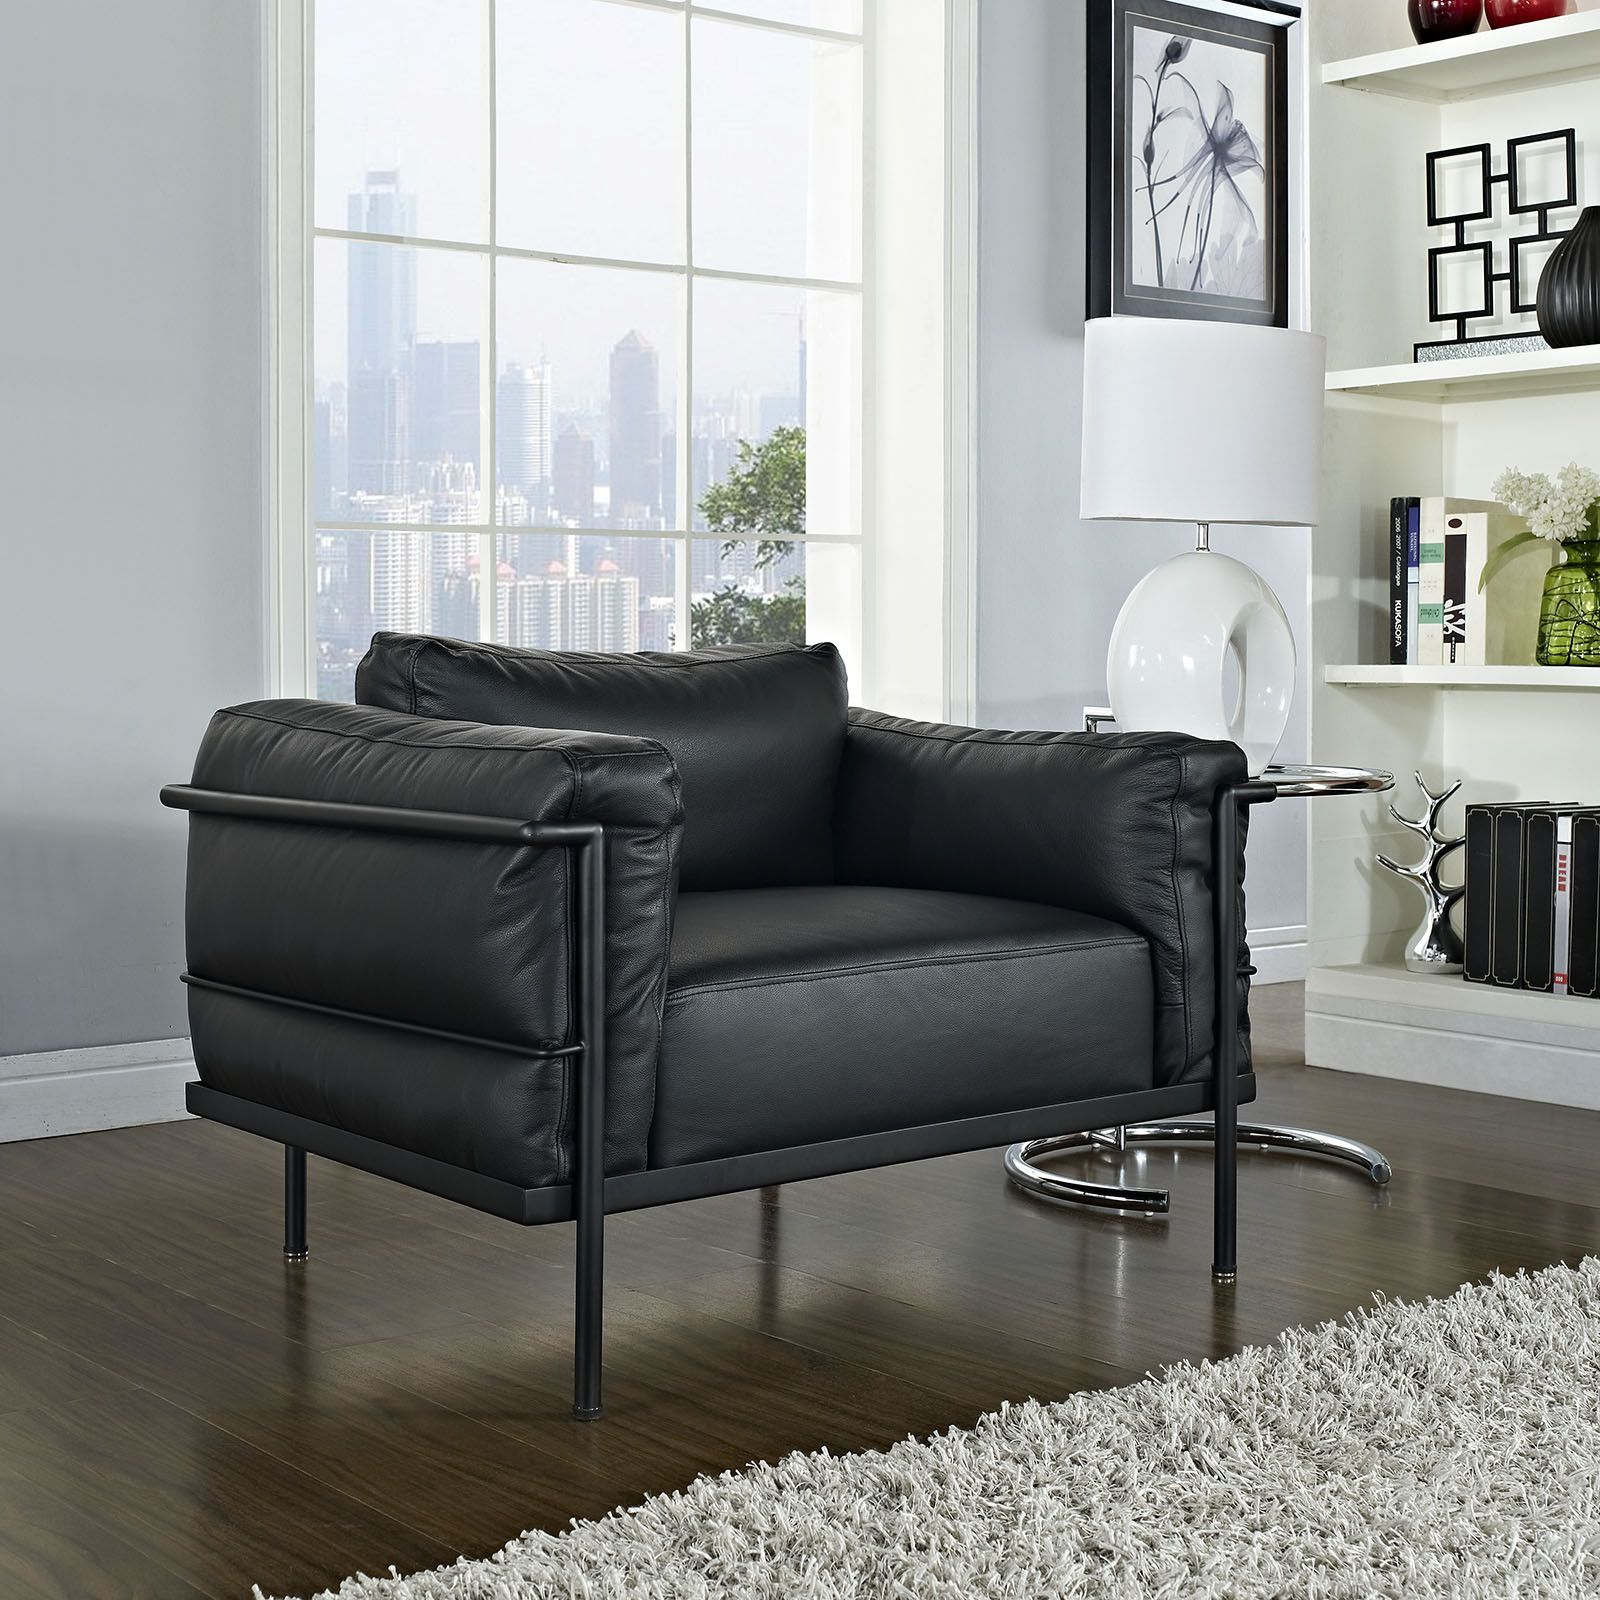 Le Corbusier Lc3 Grand Confort Chair Reproduction The Modern Source 6 Furniture Black Modern Furniture Leather Armchair